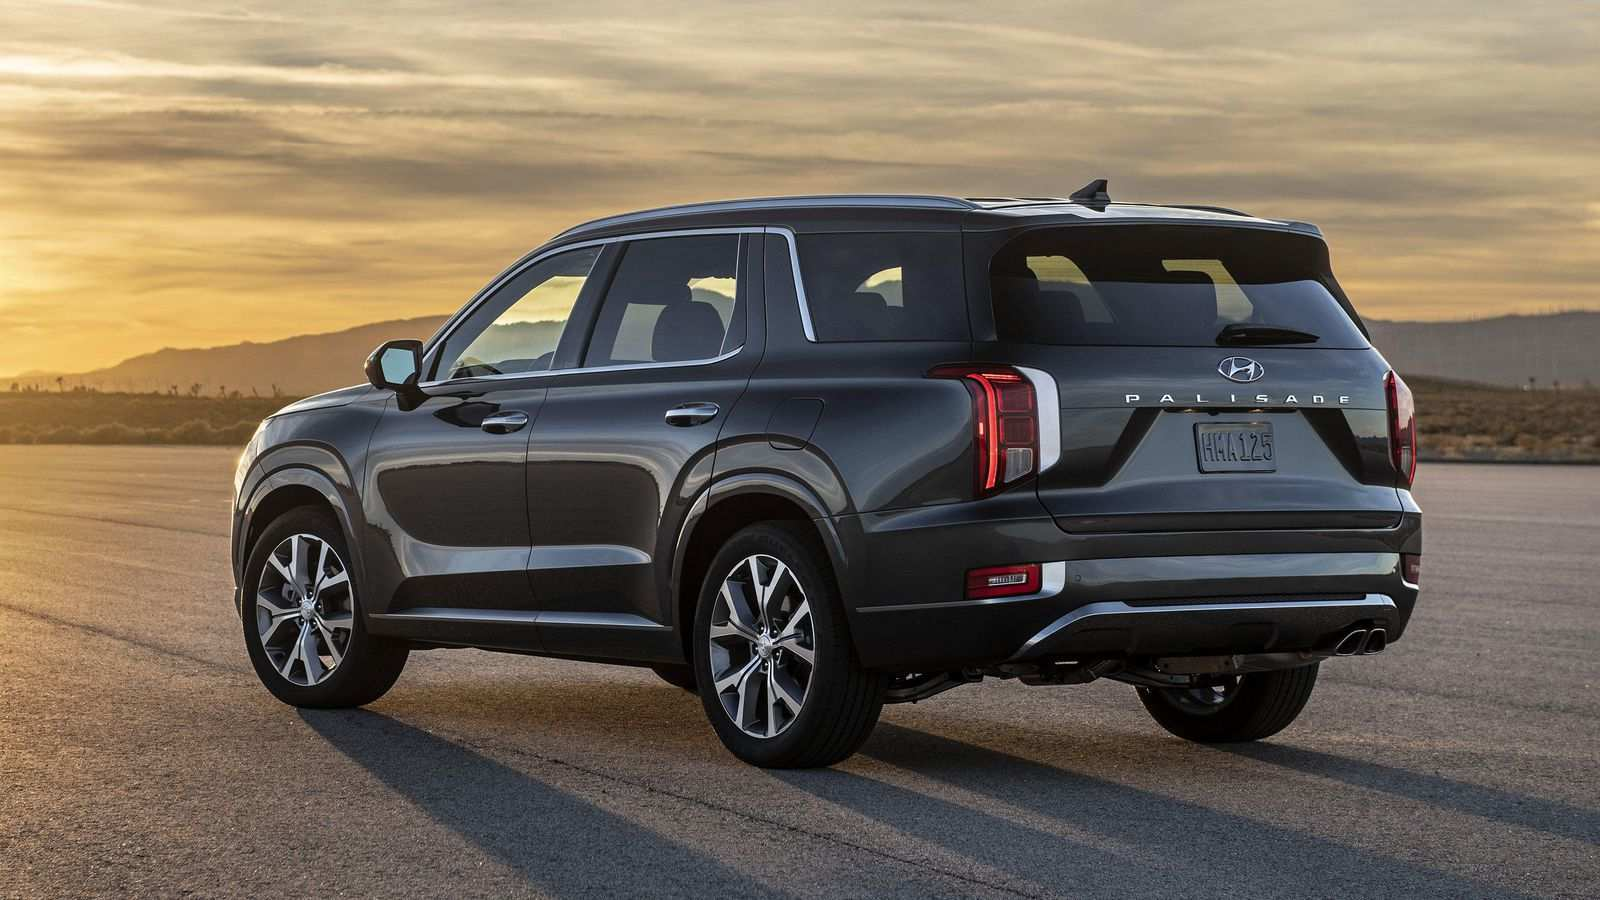 20 All New Cost Of 2020 Hyundai Palisade Review with Cost Of 2020 Hyundai Palisade